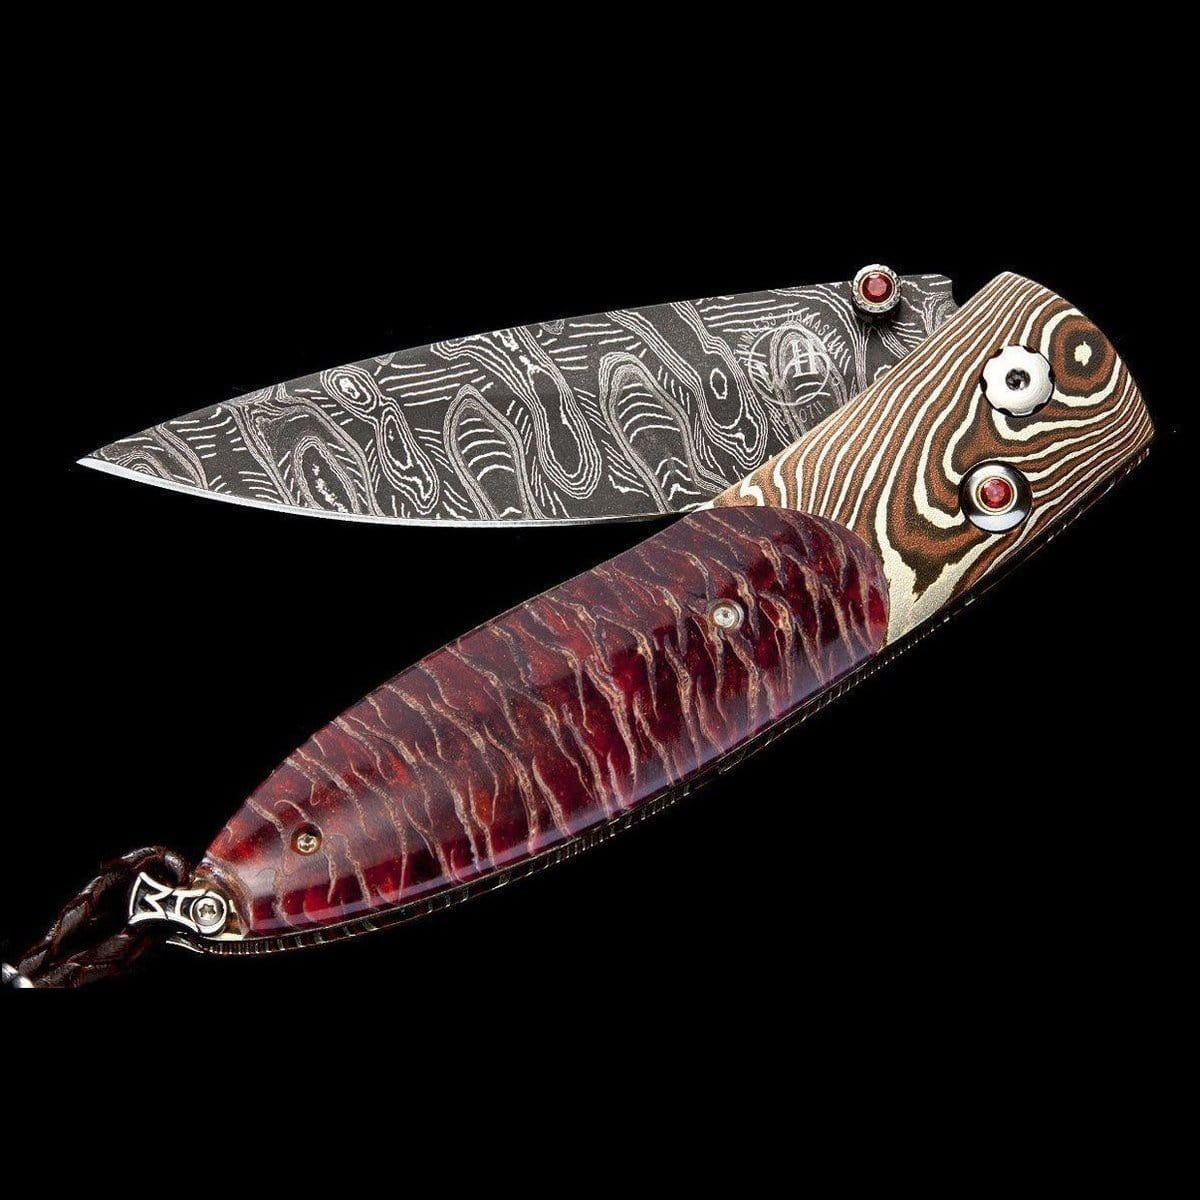 Monarch Ponderosa Limited Edition Knife - B05 PONDEROSA-William Henry-Renee Taylor Gallery